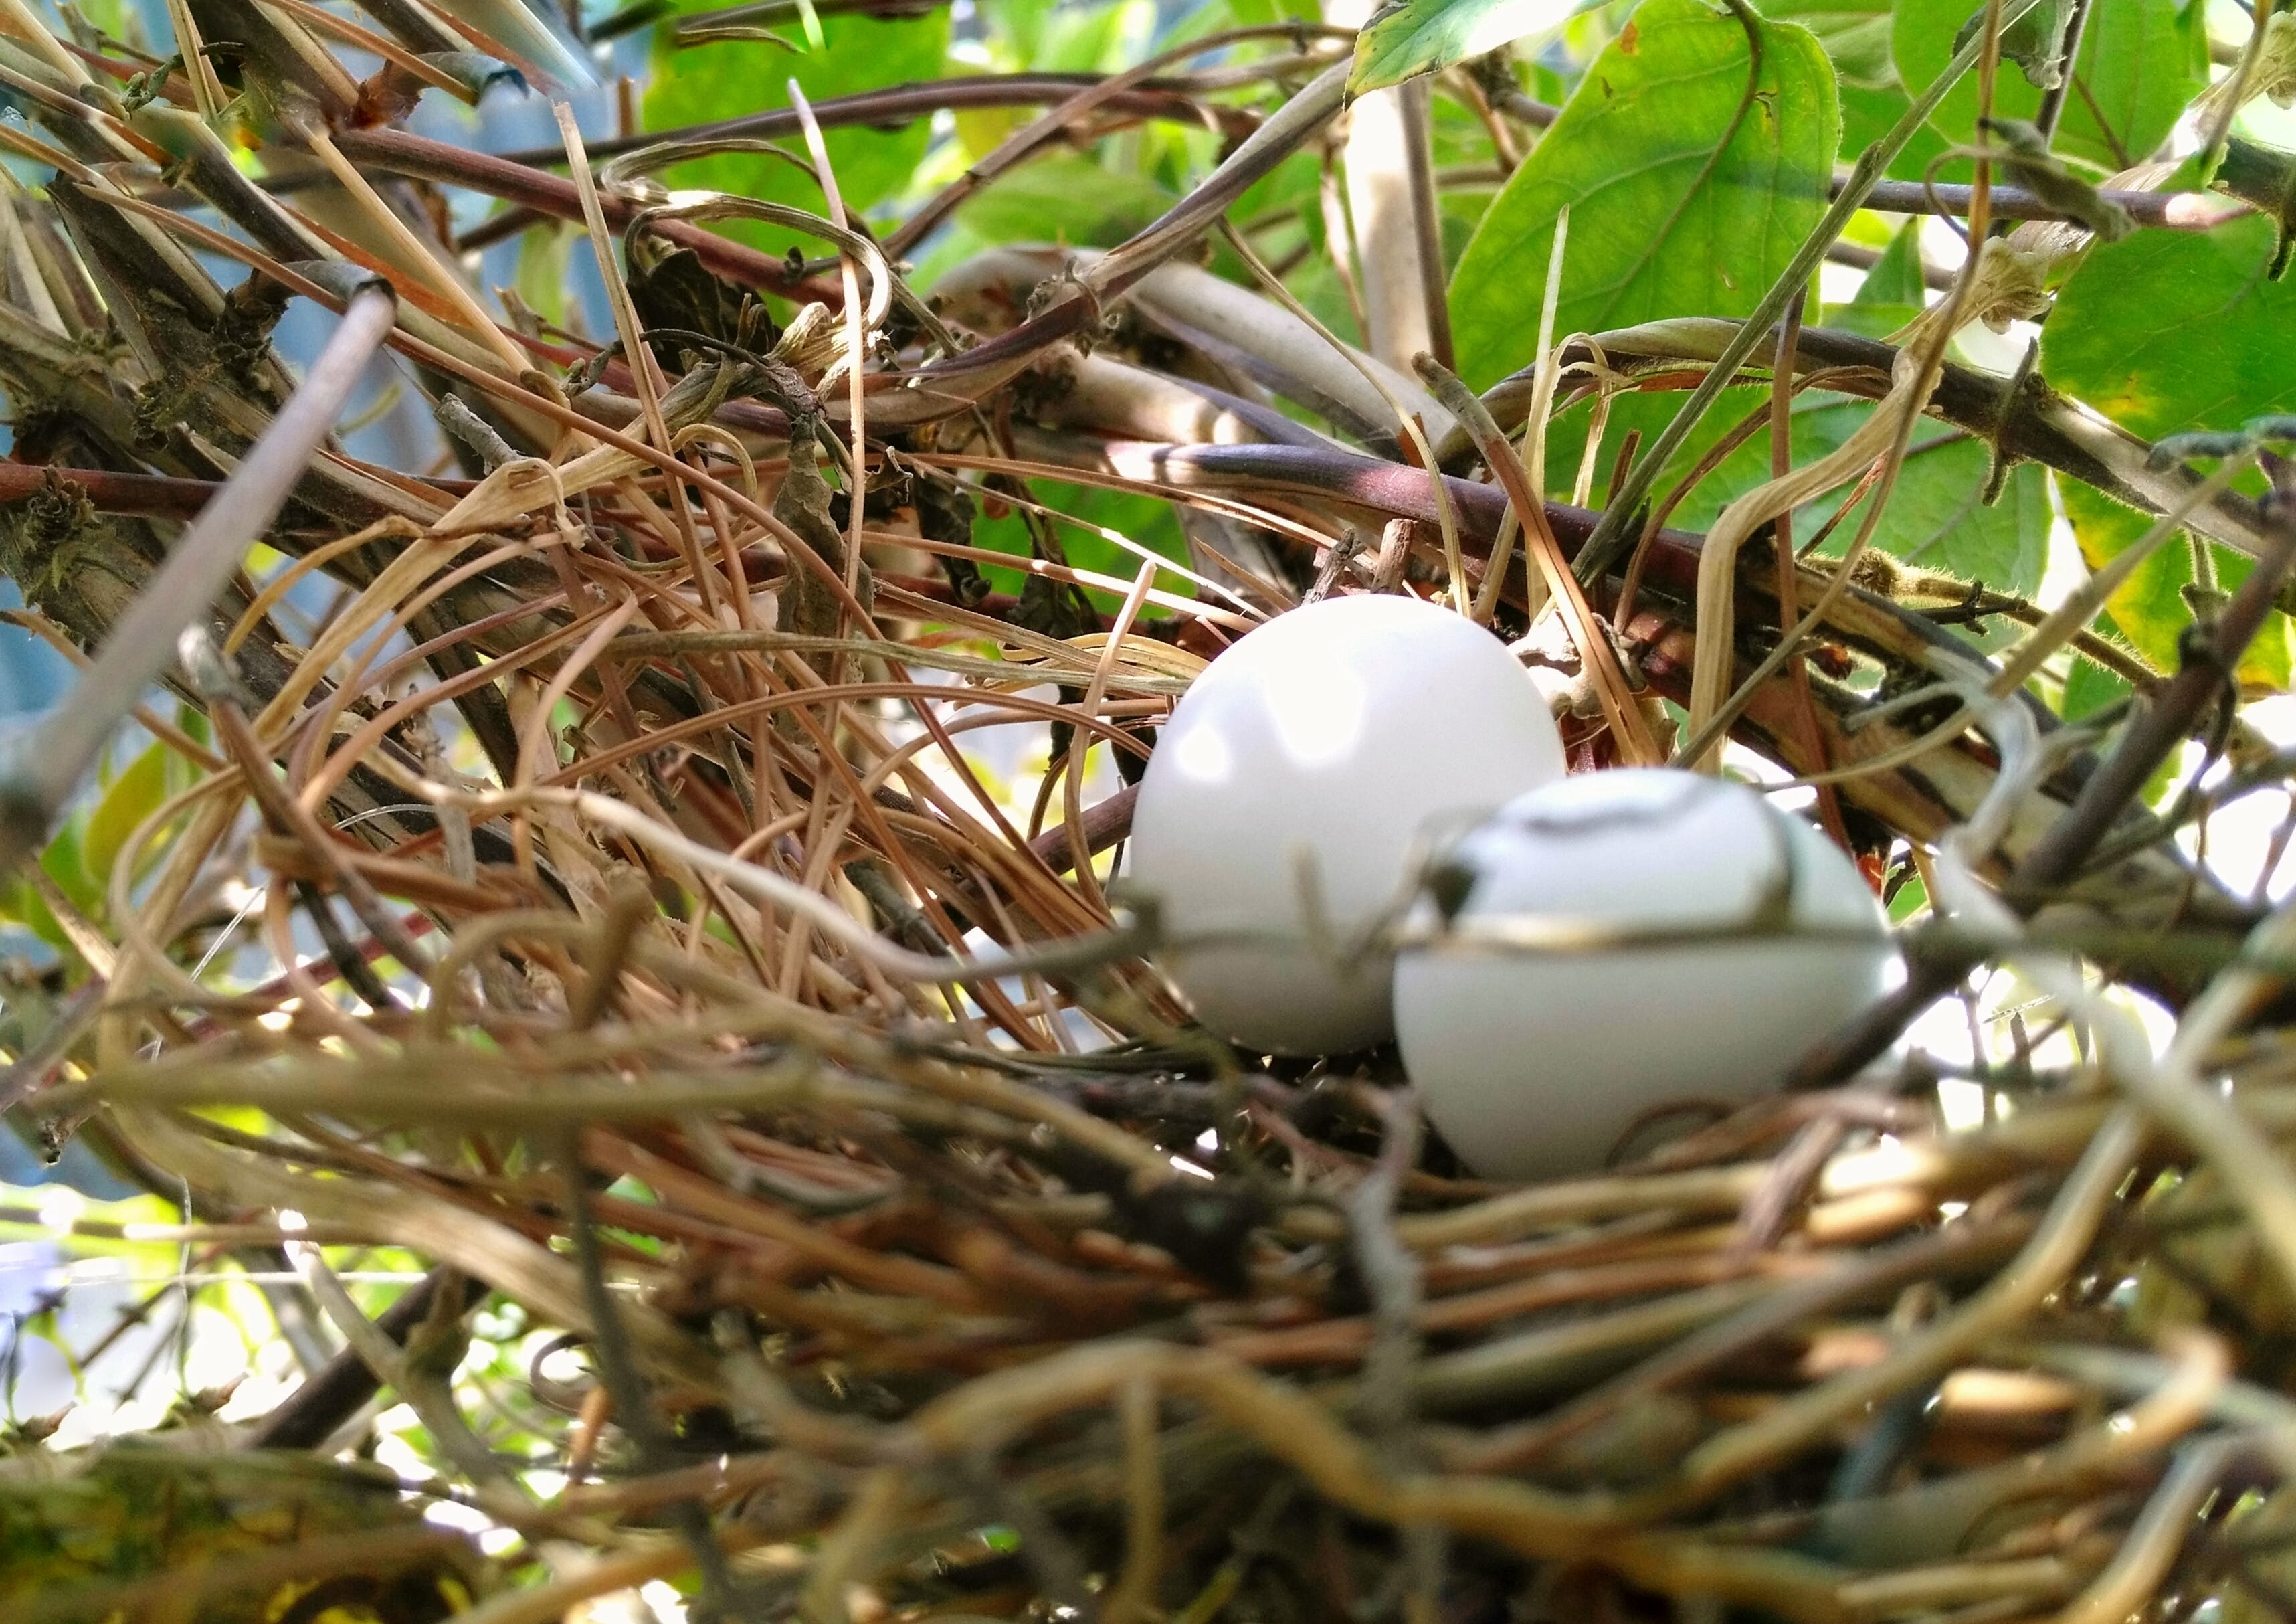 Free stock photo of birdegges, birdhouse, birdnest, eggs